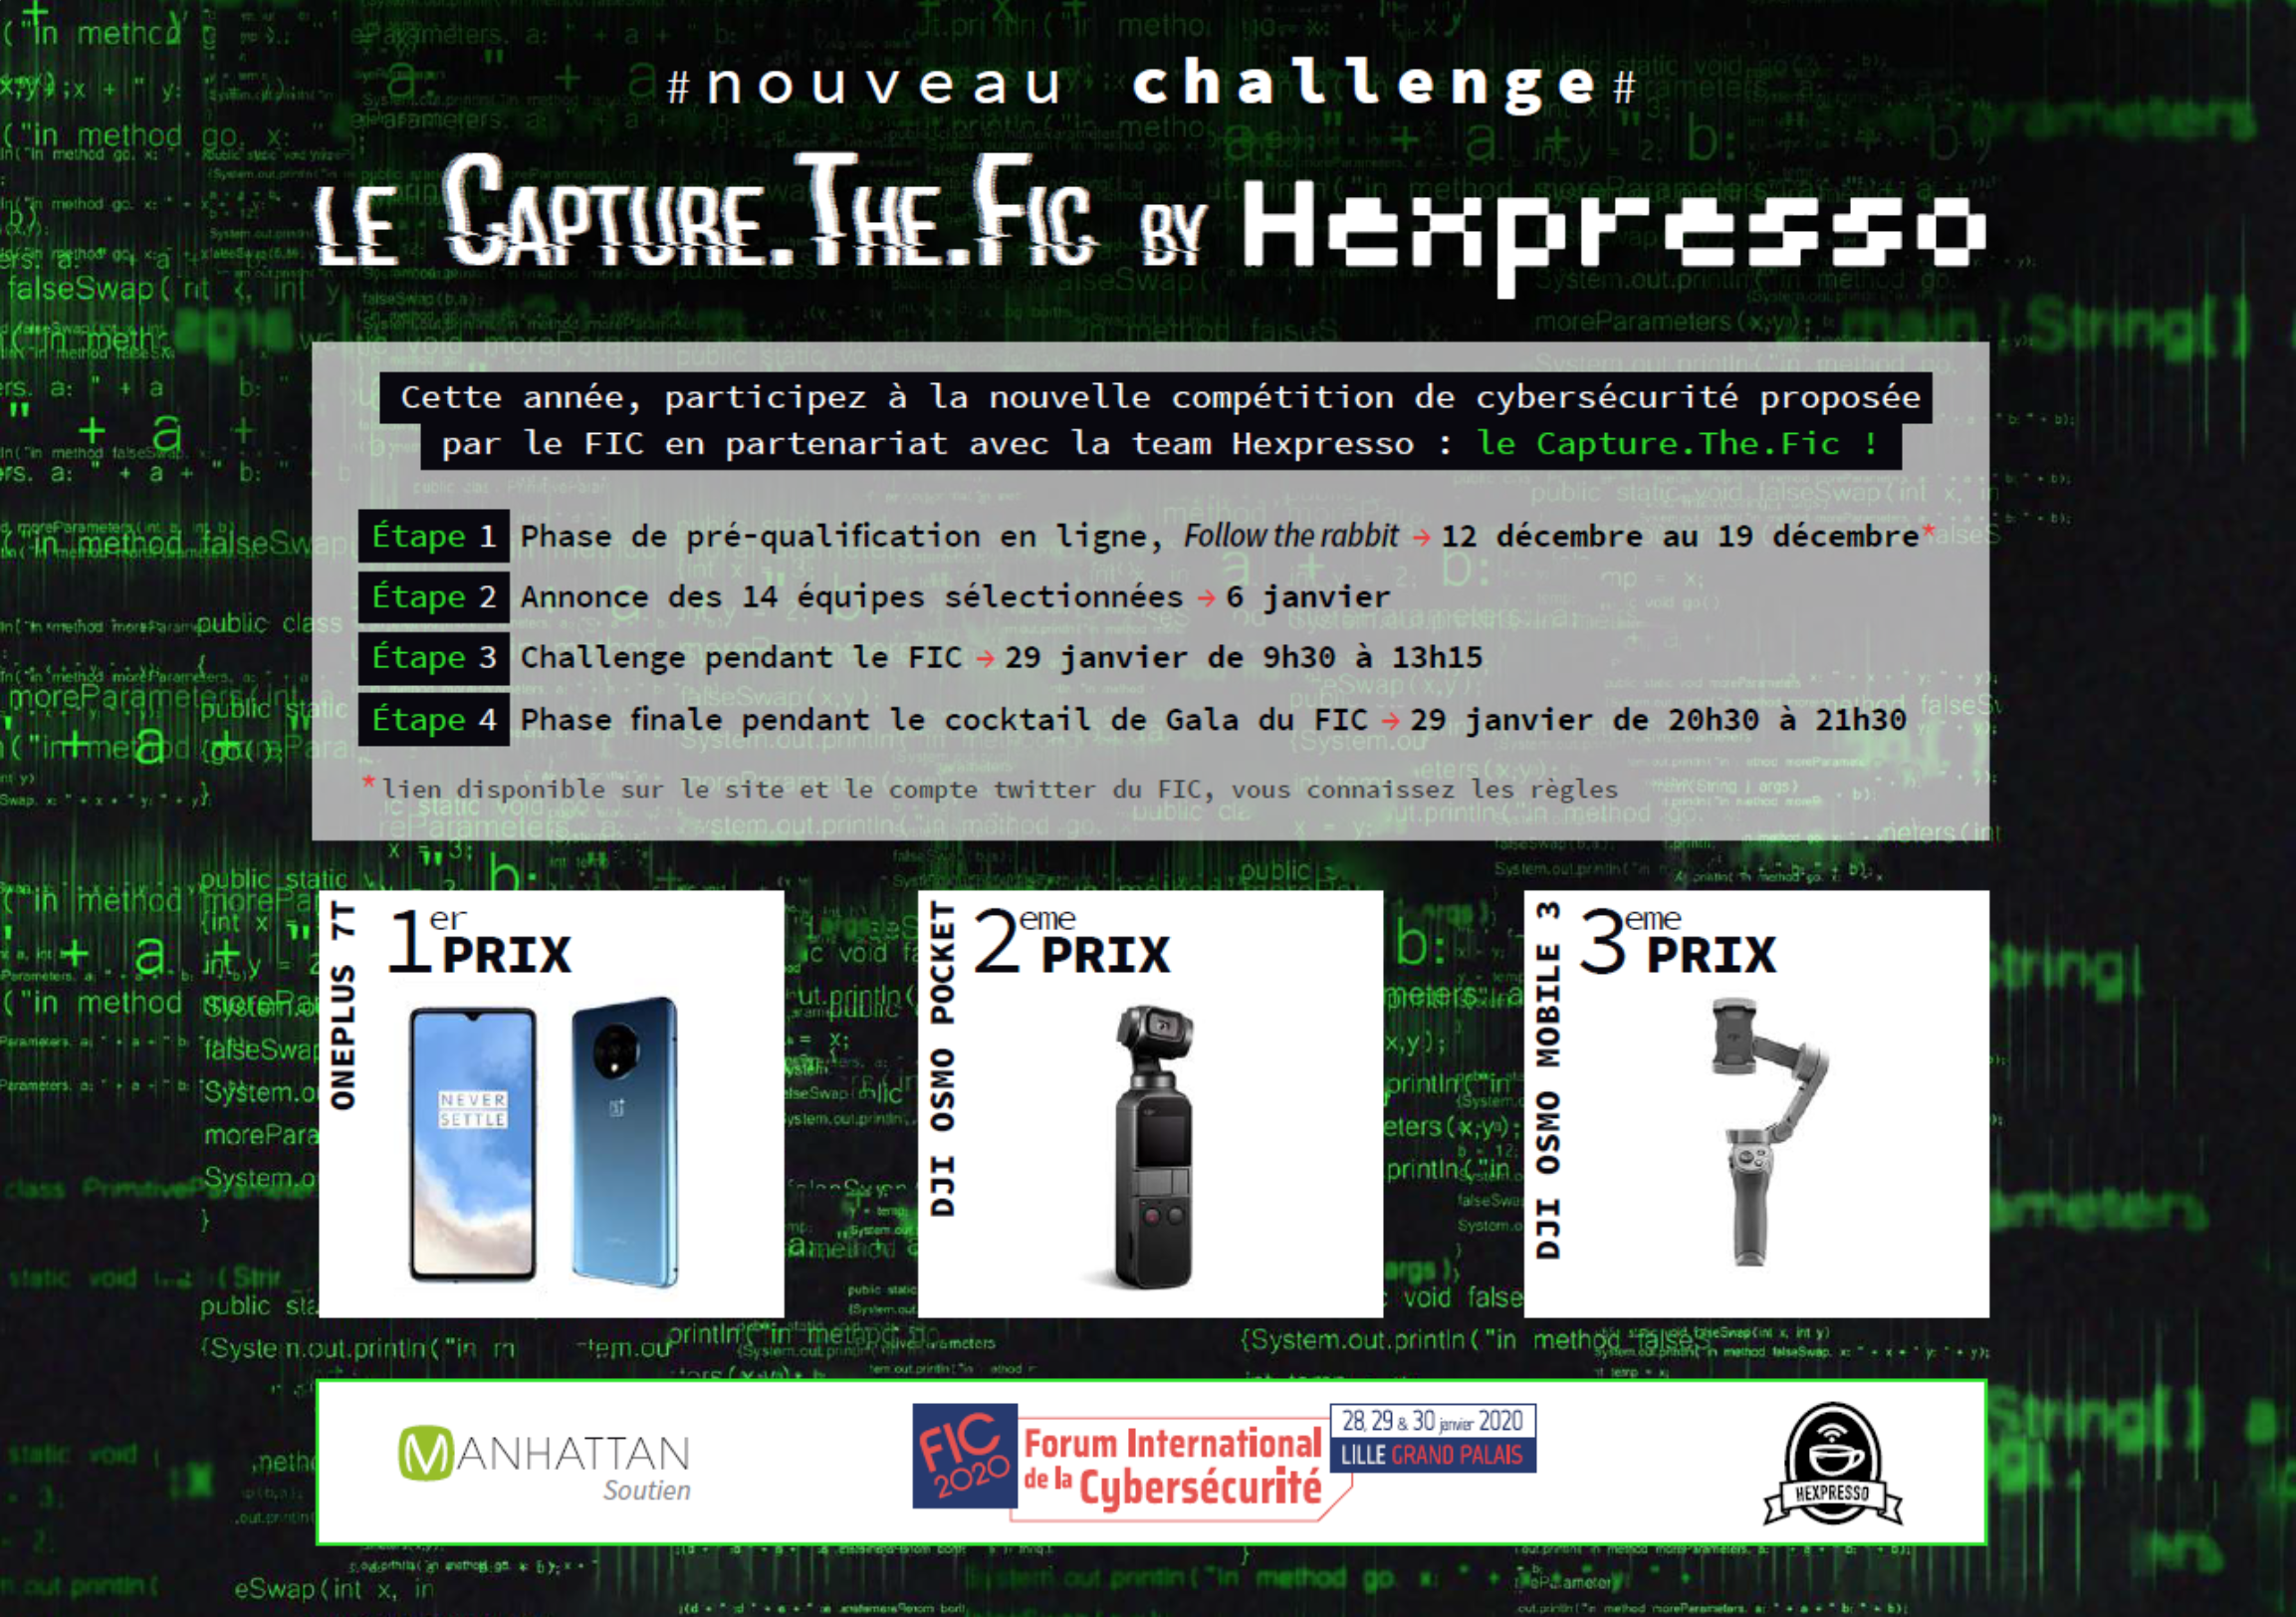 Hexpresso Capture.The.Fic CTF write-up